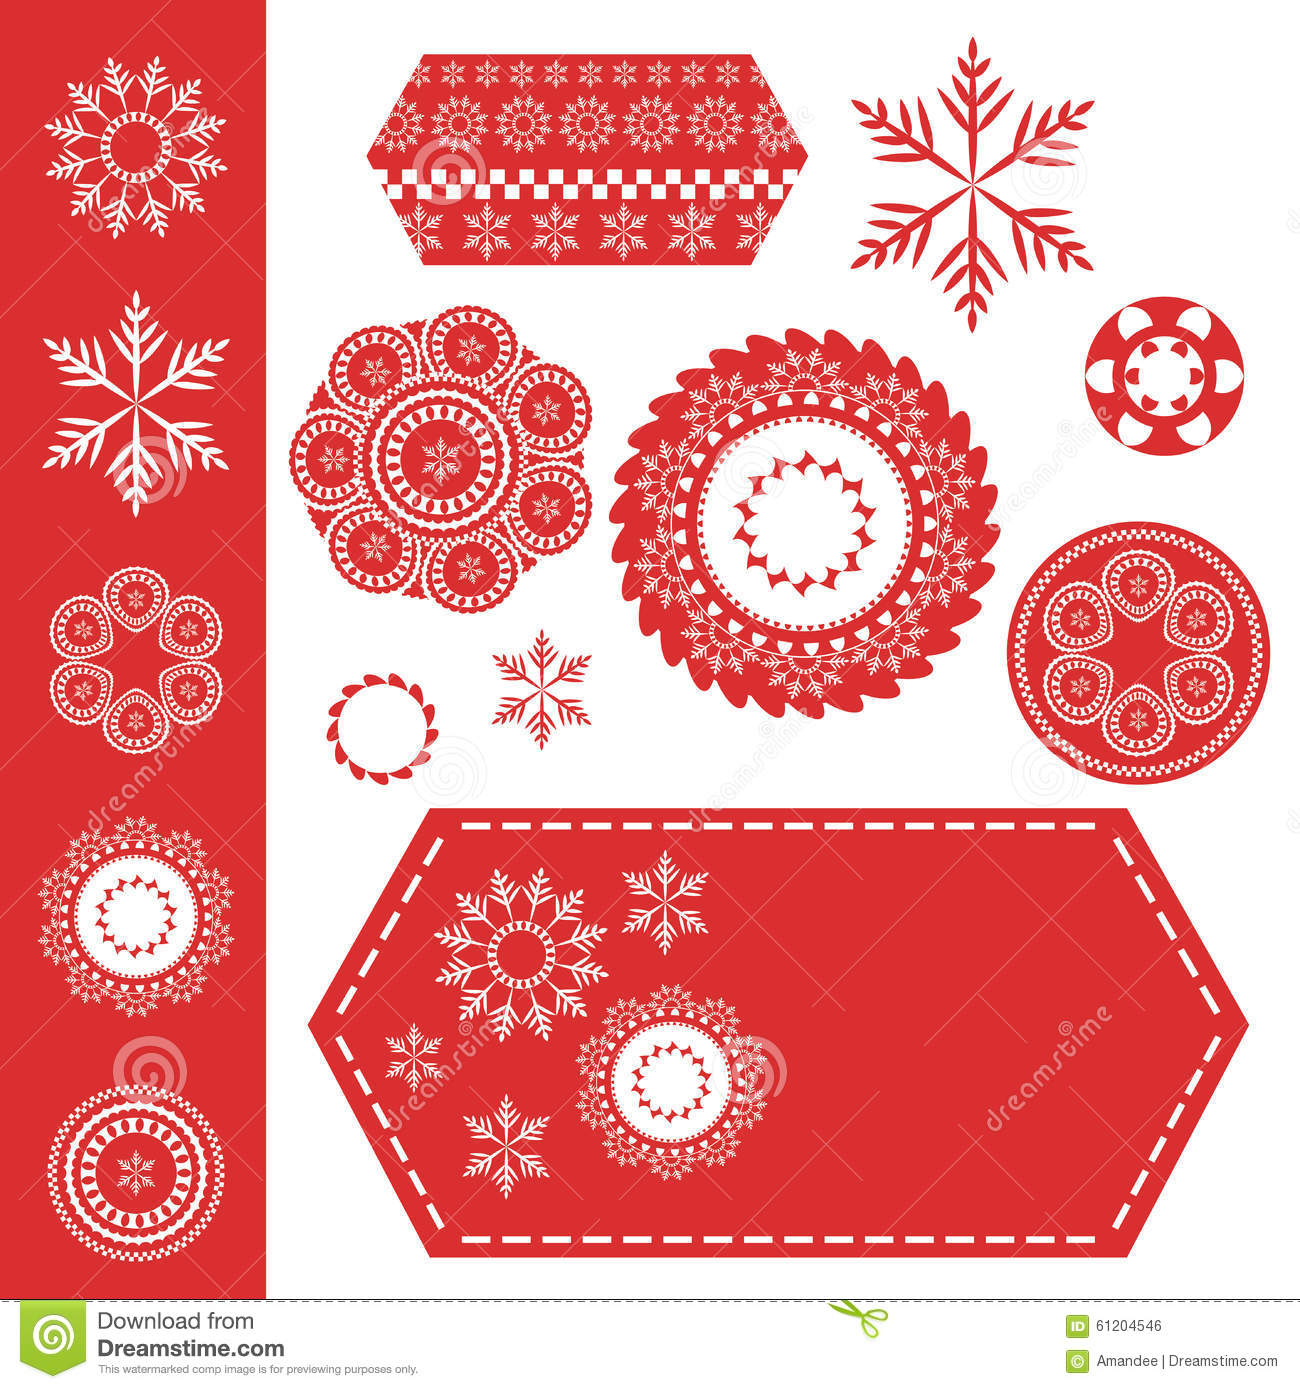 christmas snowflakes or lace design elements on red tag with white stiches stock vector